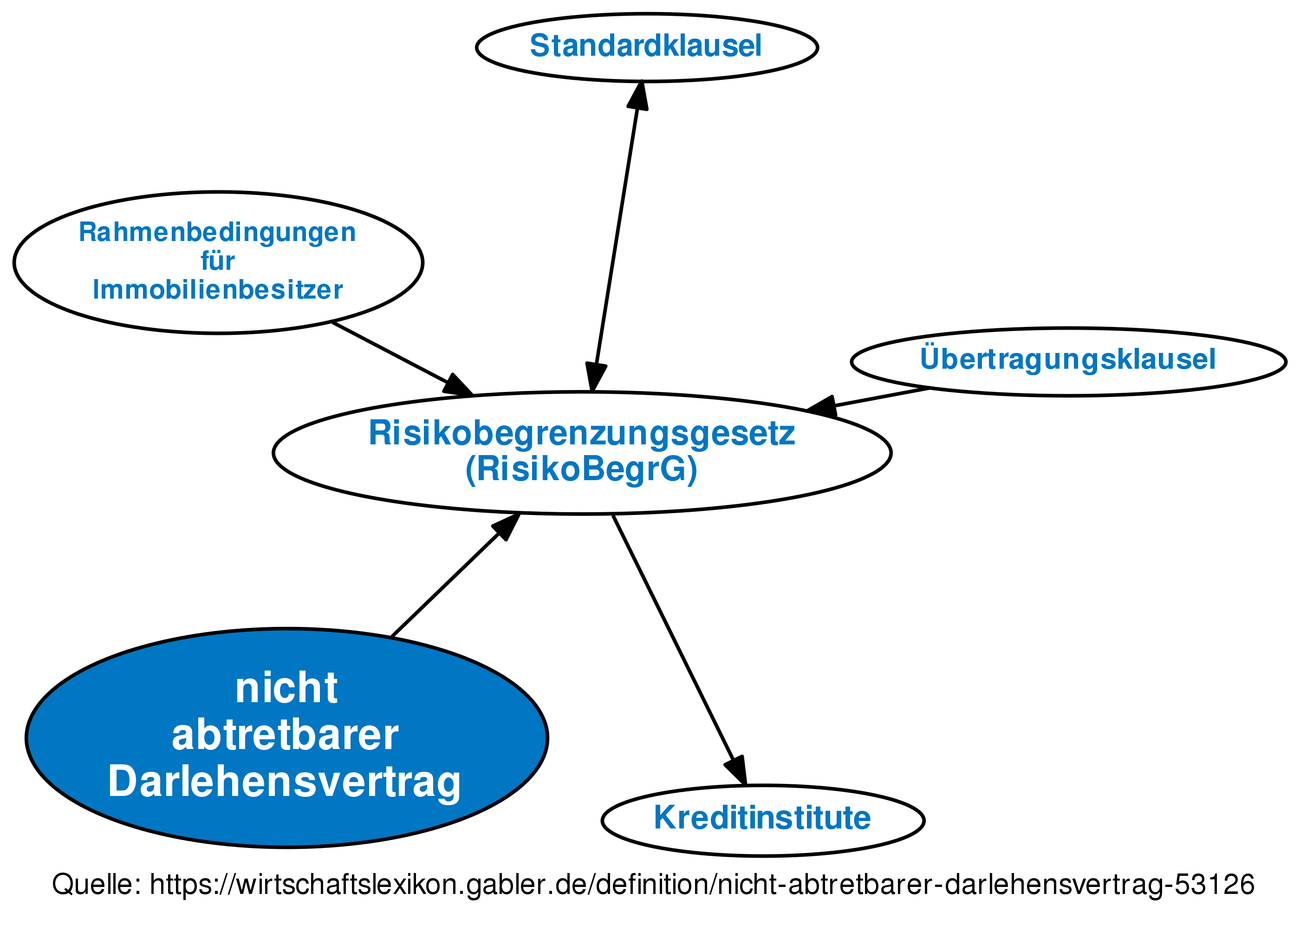 Nicht Abtretbarer Darlehensvertrag Definition Gabler